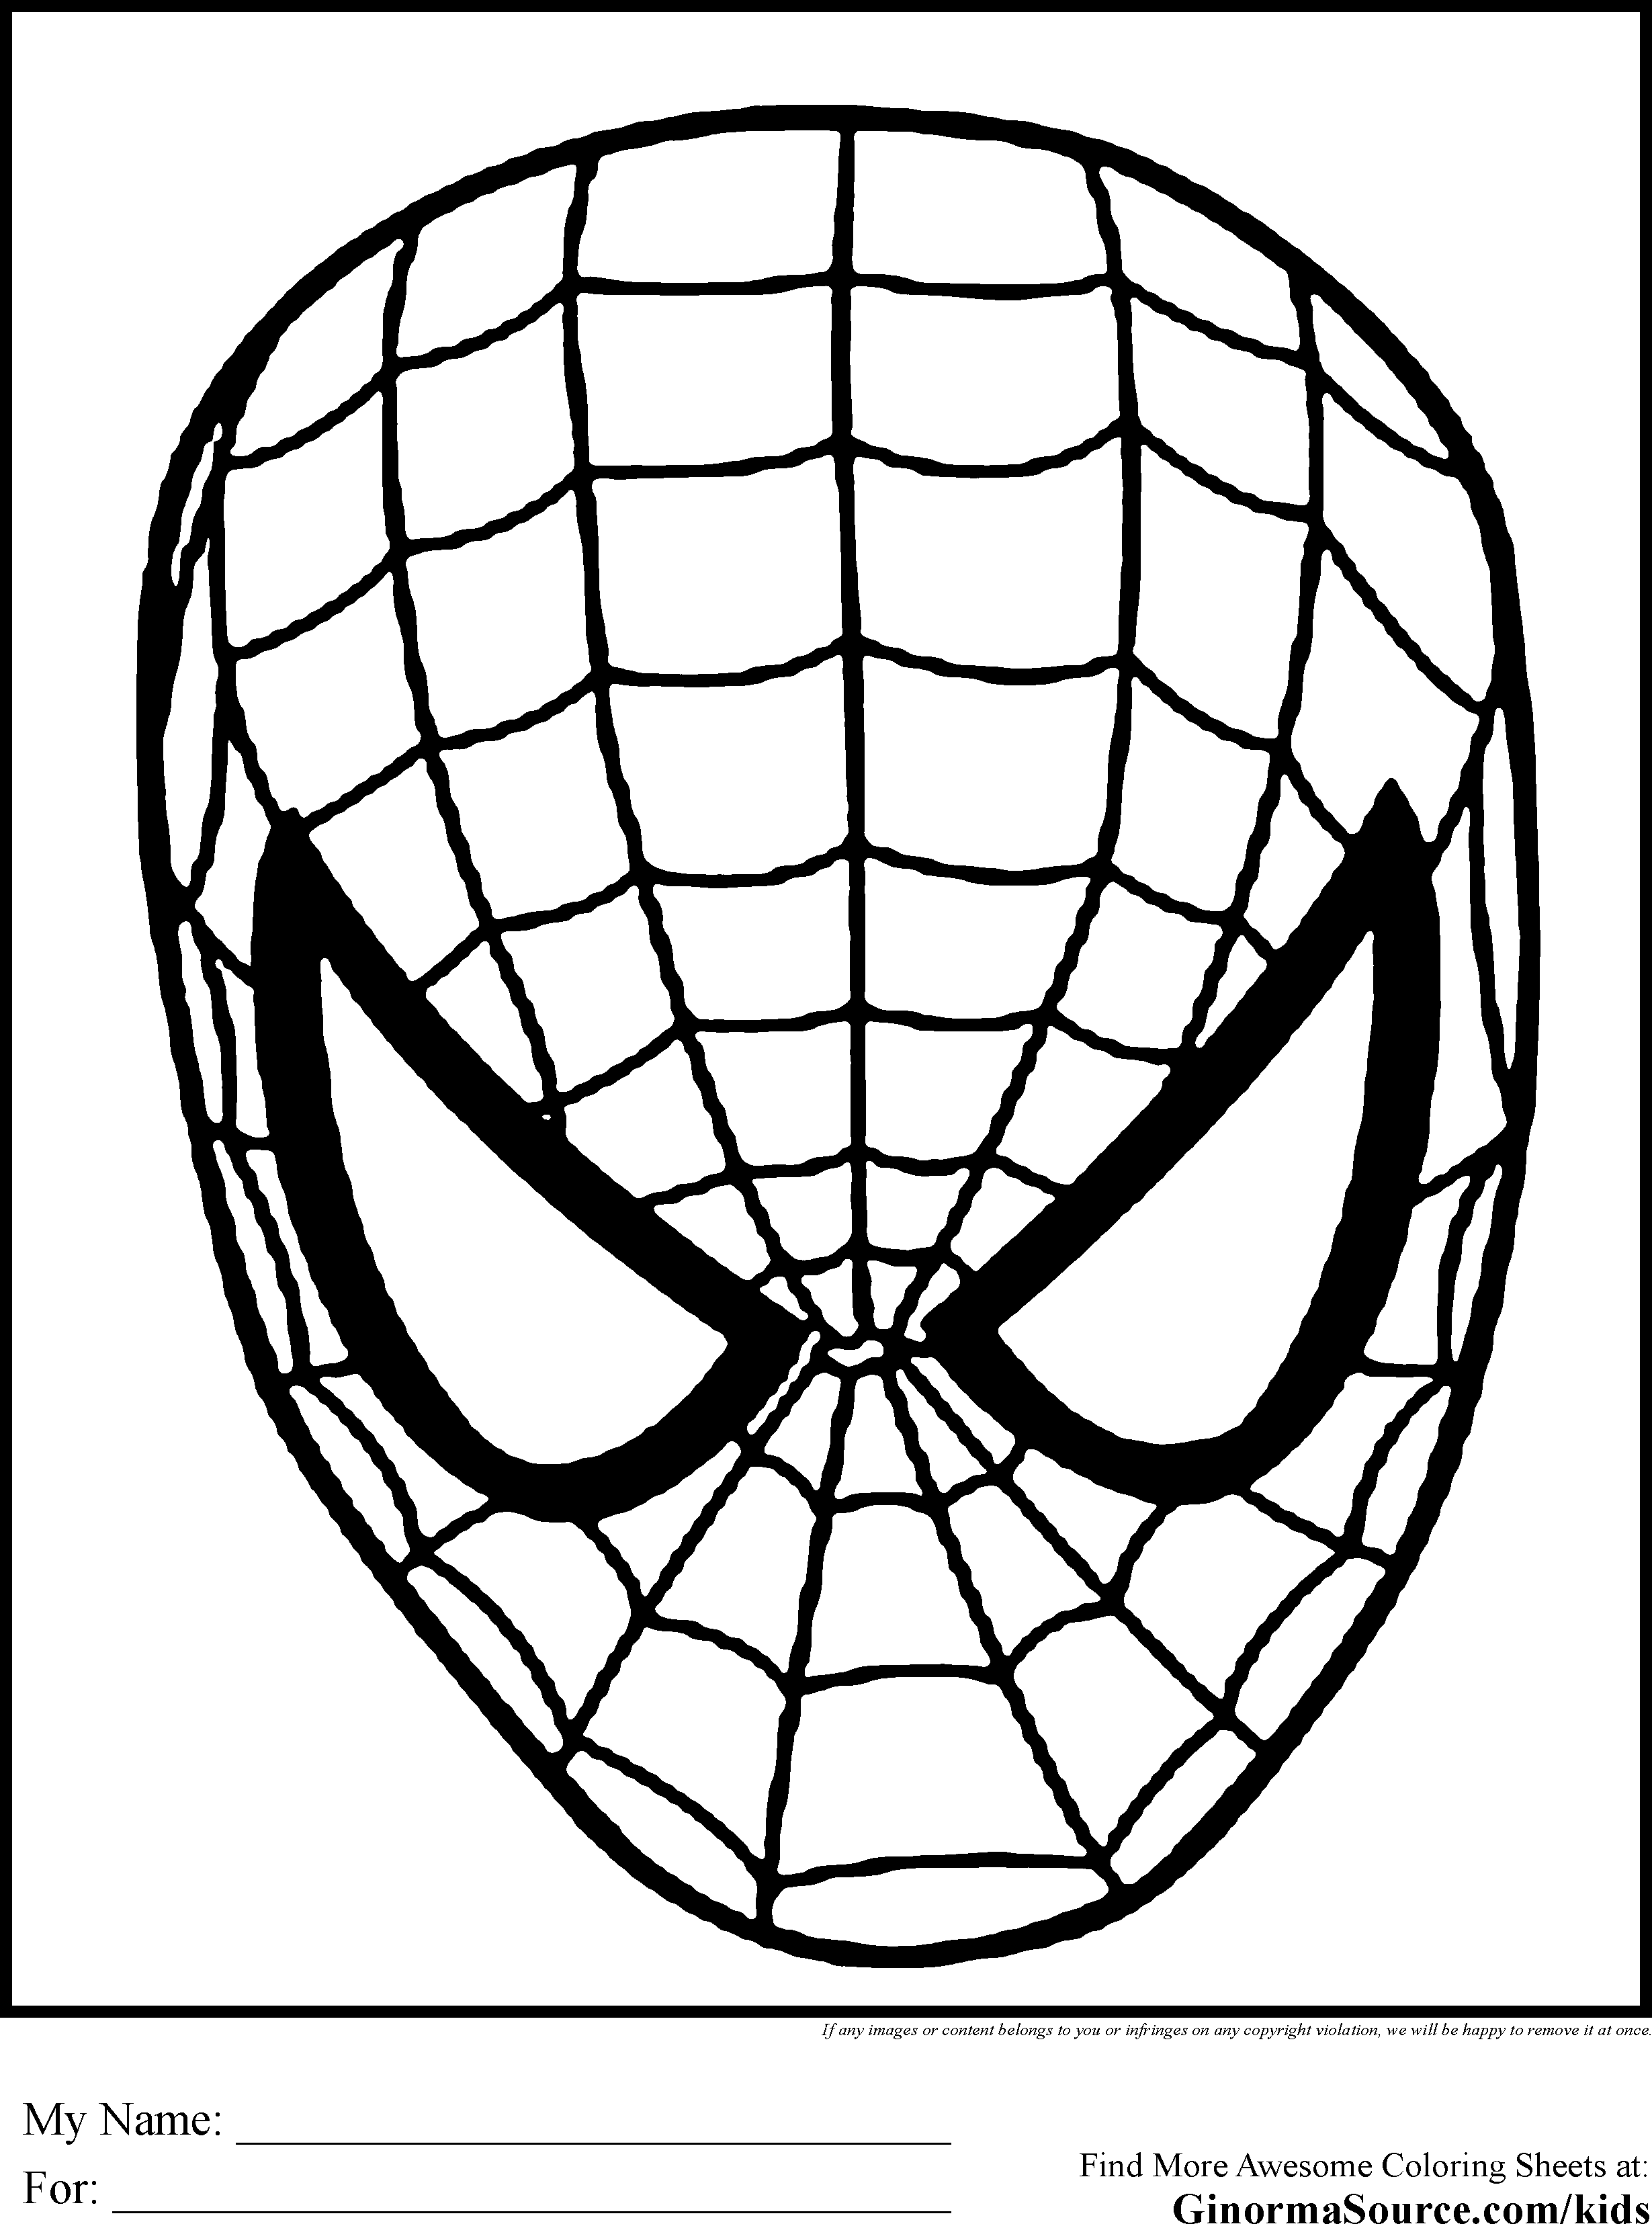 spiderman coloring pages  HD Wallpapers  Spiderman coloring